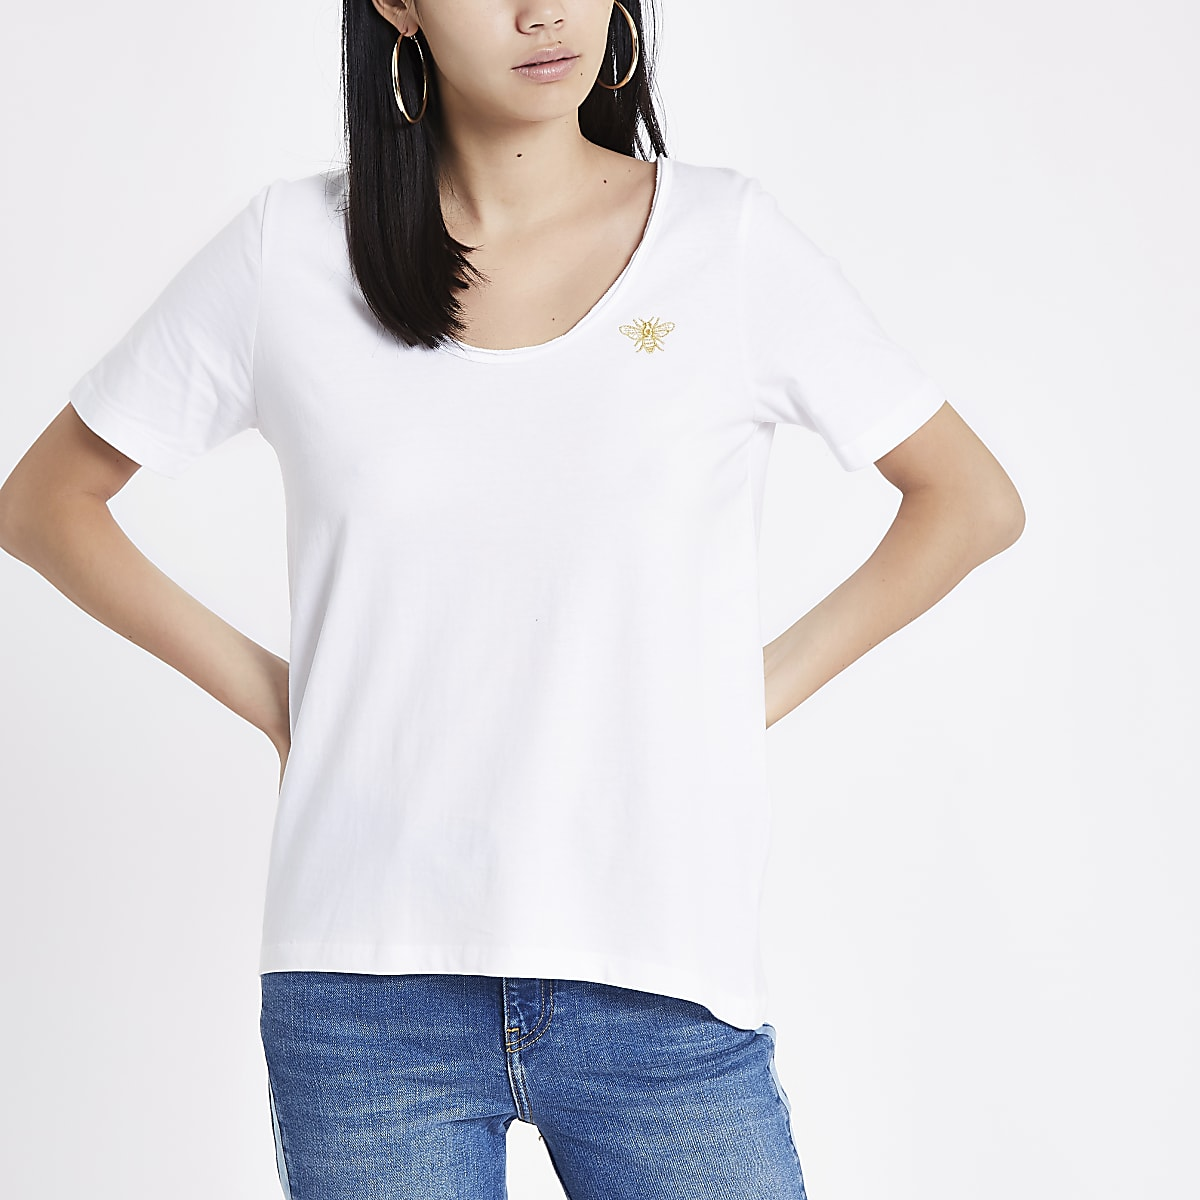 efb1d0213194 White round scoop neck T-shirt - T-Shirts - Tops - women